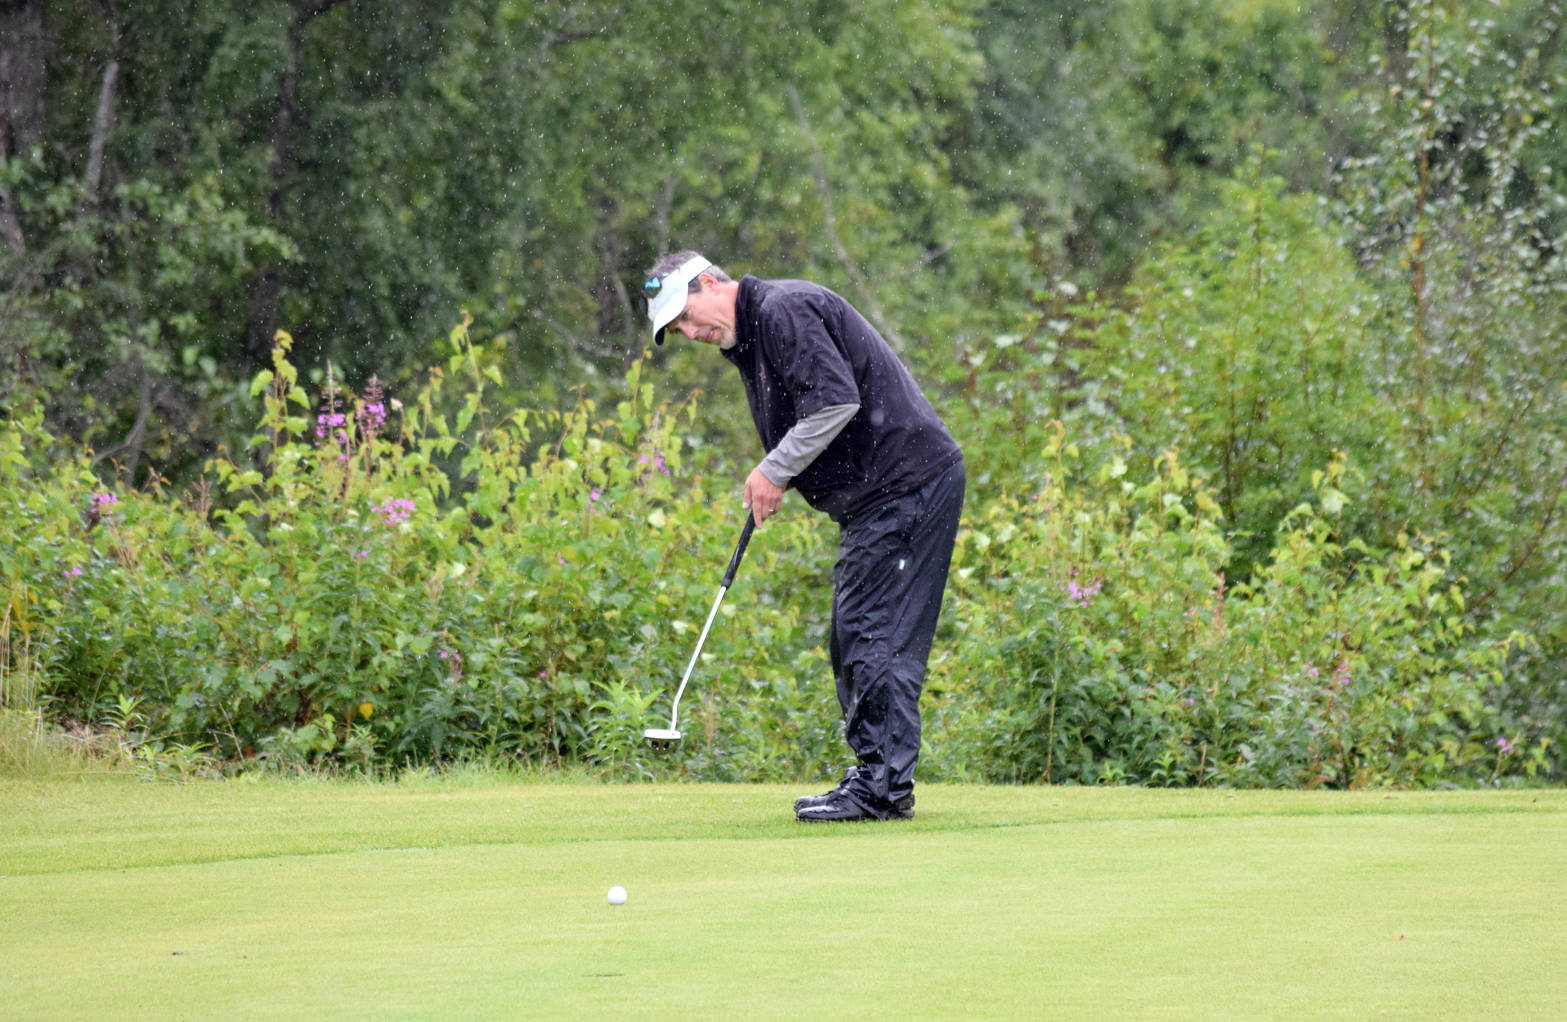 Chris Morin putts for birdie on the 18th green Sunday, Aug. 20, 2017, at the Kenai Golf Course during the Kenai Open. Morin's putt came up short and the three-time defending champ lost by one stroke to Max Dye. (Photo by Jeff Helminiak/Peninsula Clarion)